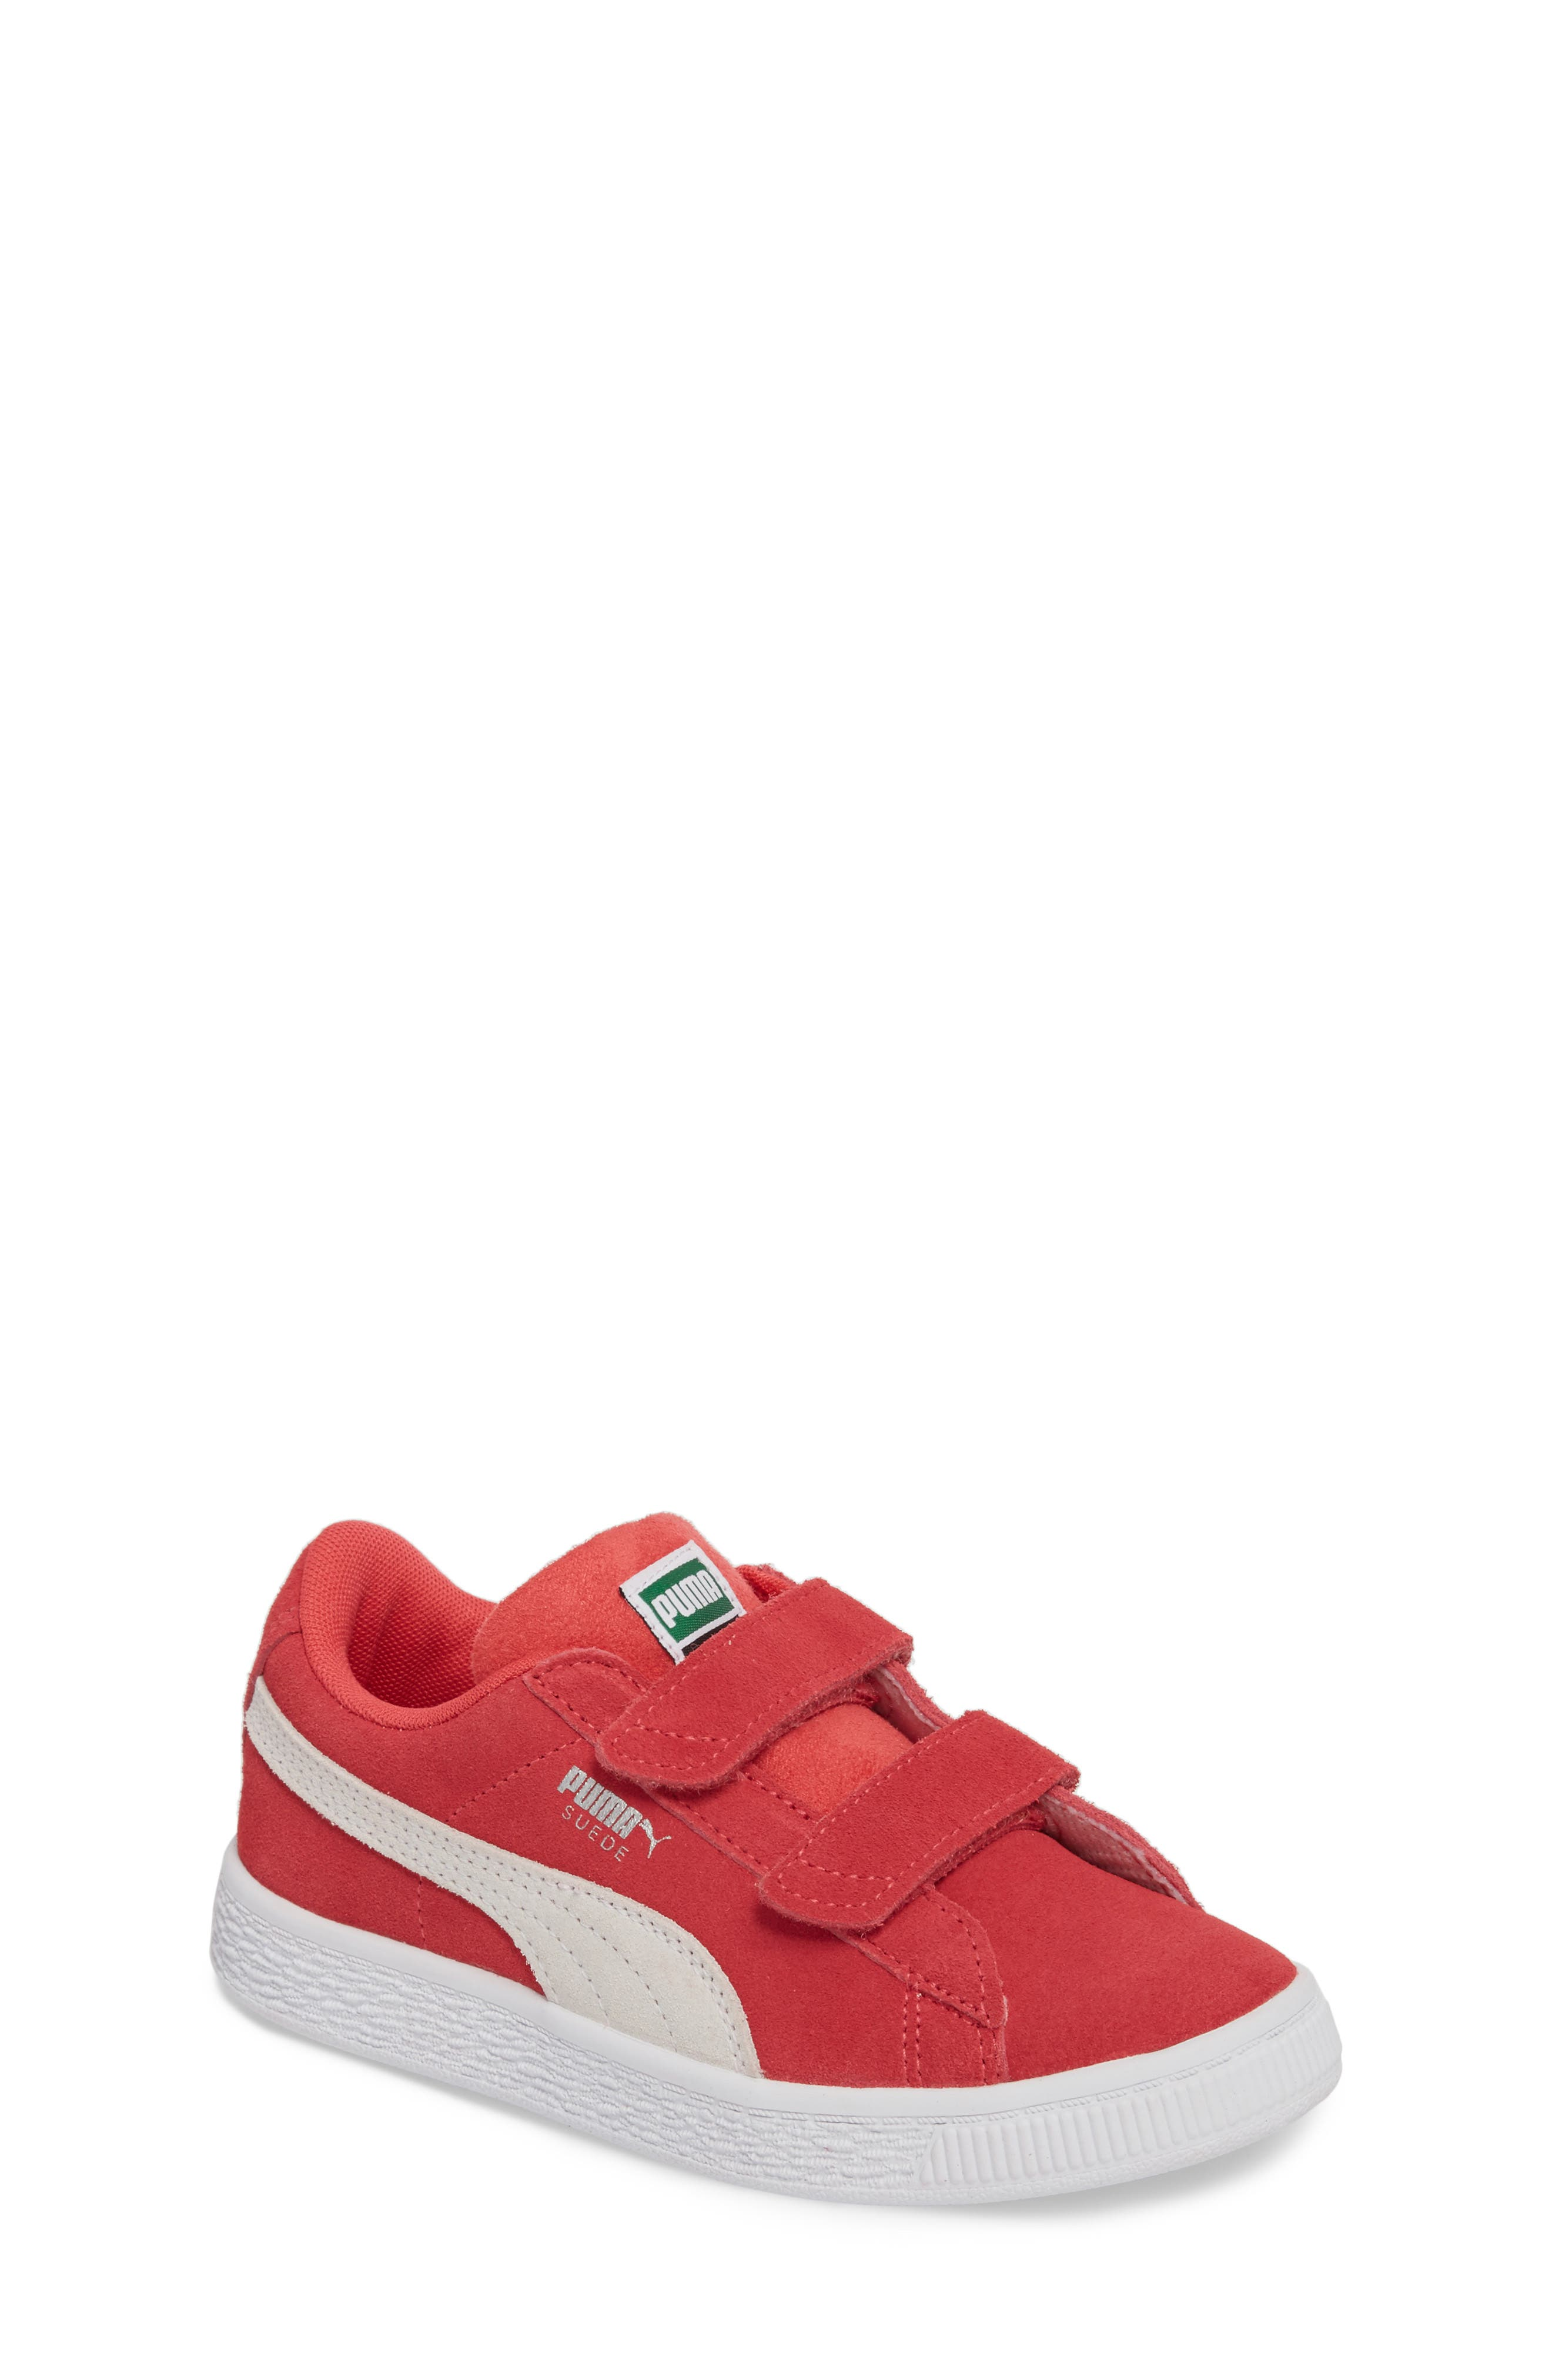 Suede Classic Sneaker,                         Main,                         color, PARADISE PINK/ PUMA WHITE